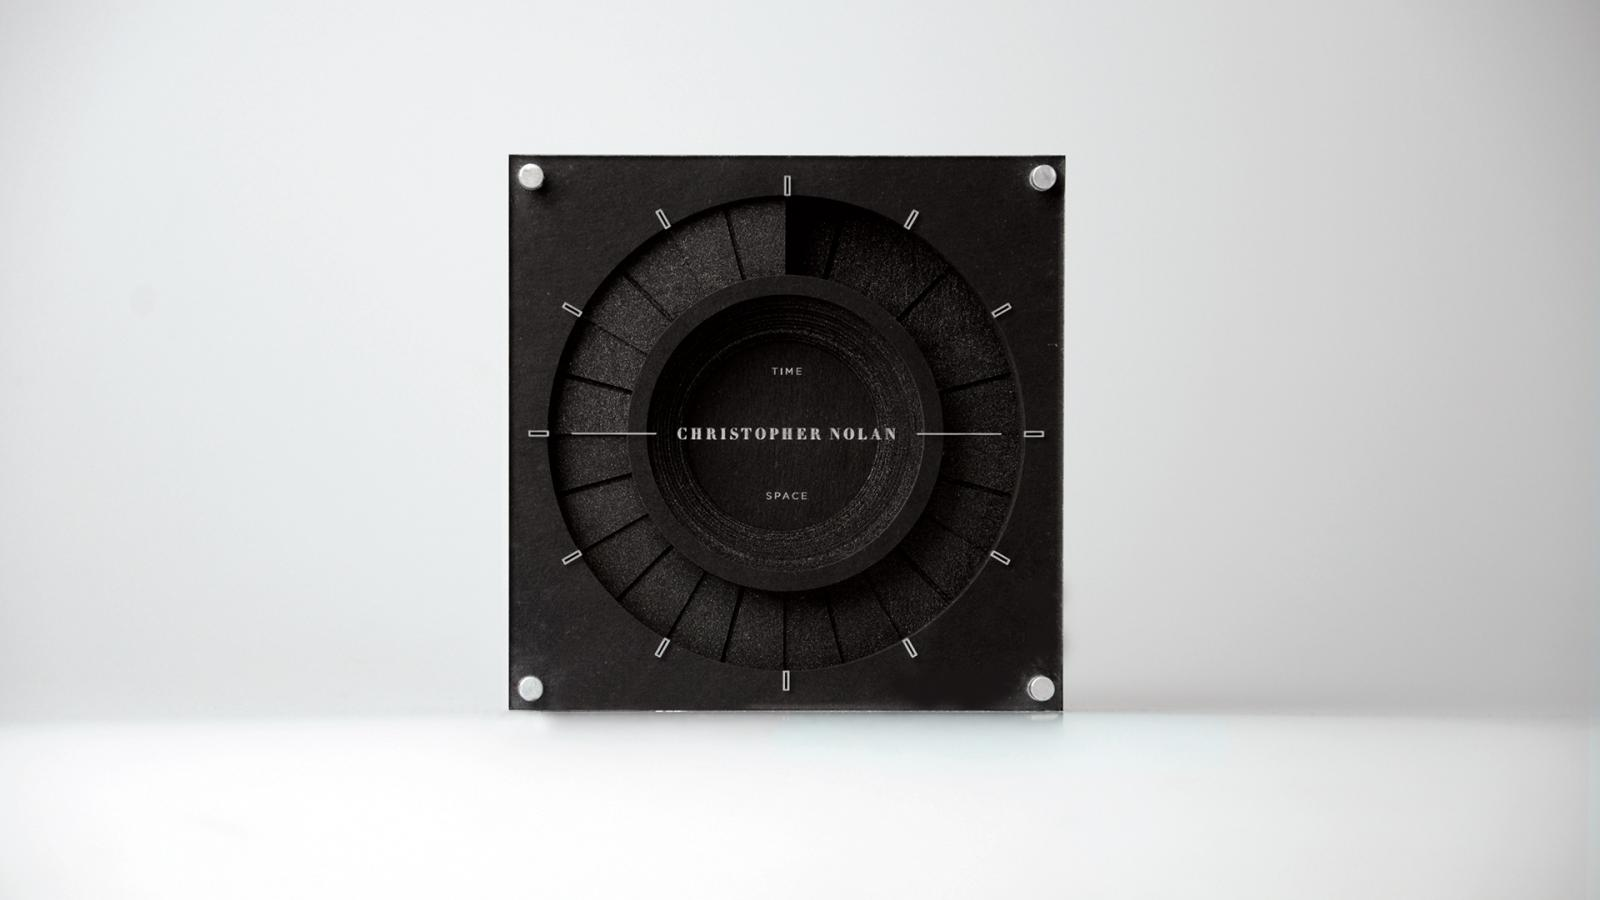 Packaging & Graphic Design for Christopher Nolan's Time X Space